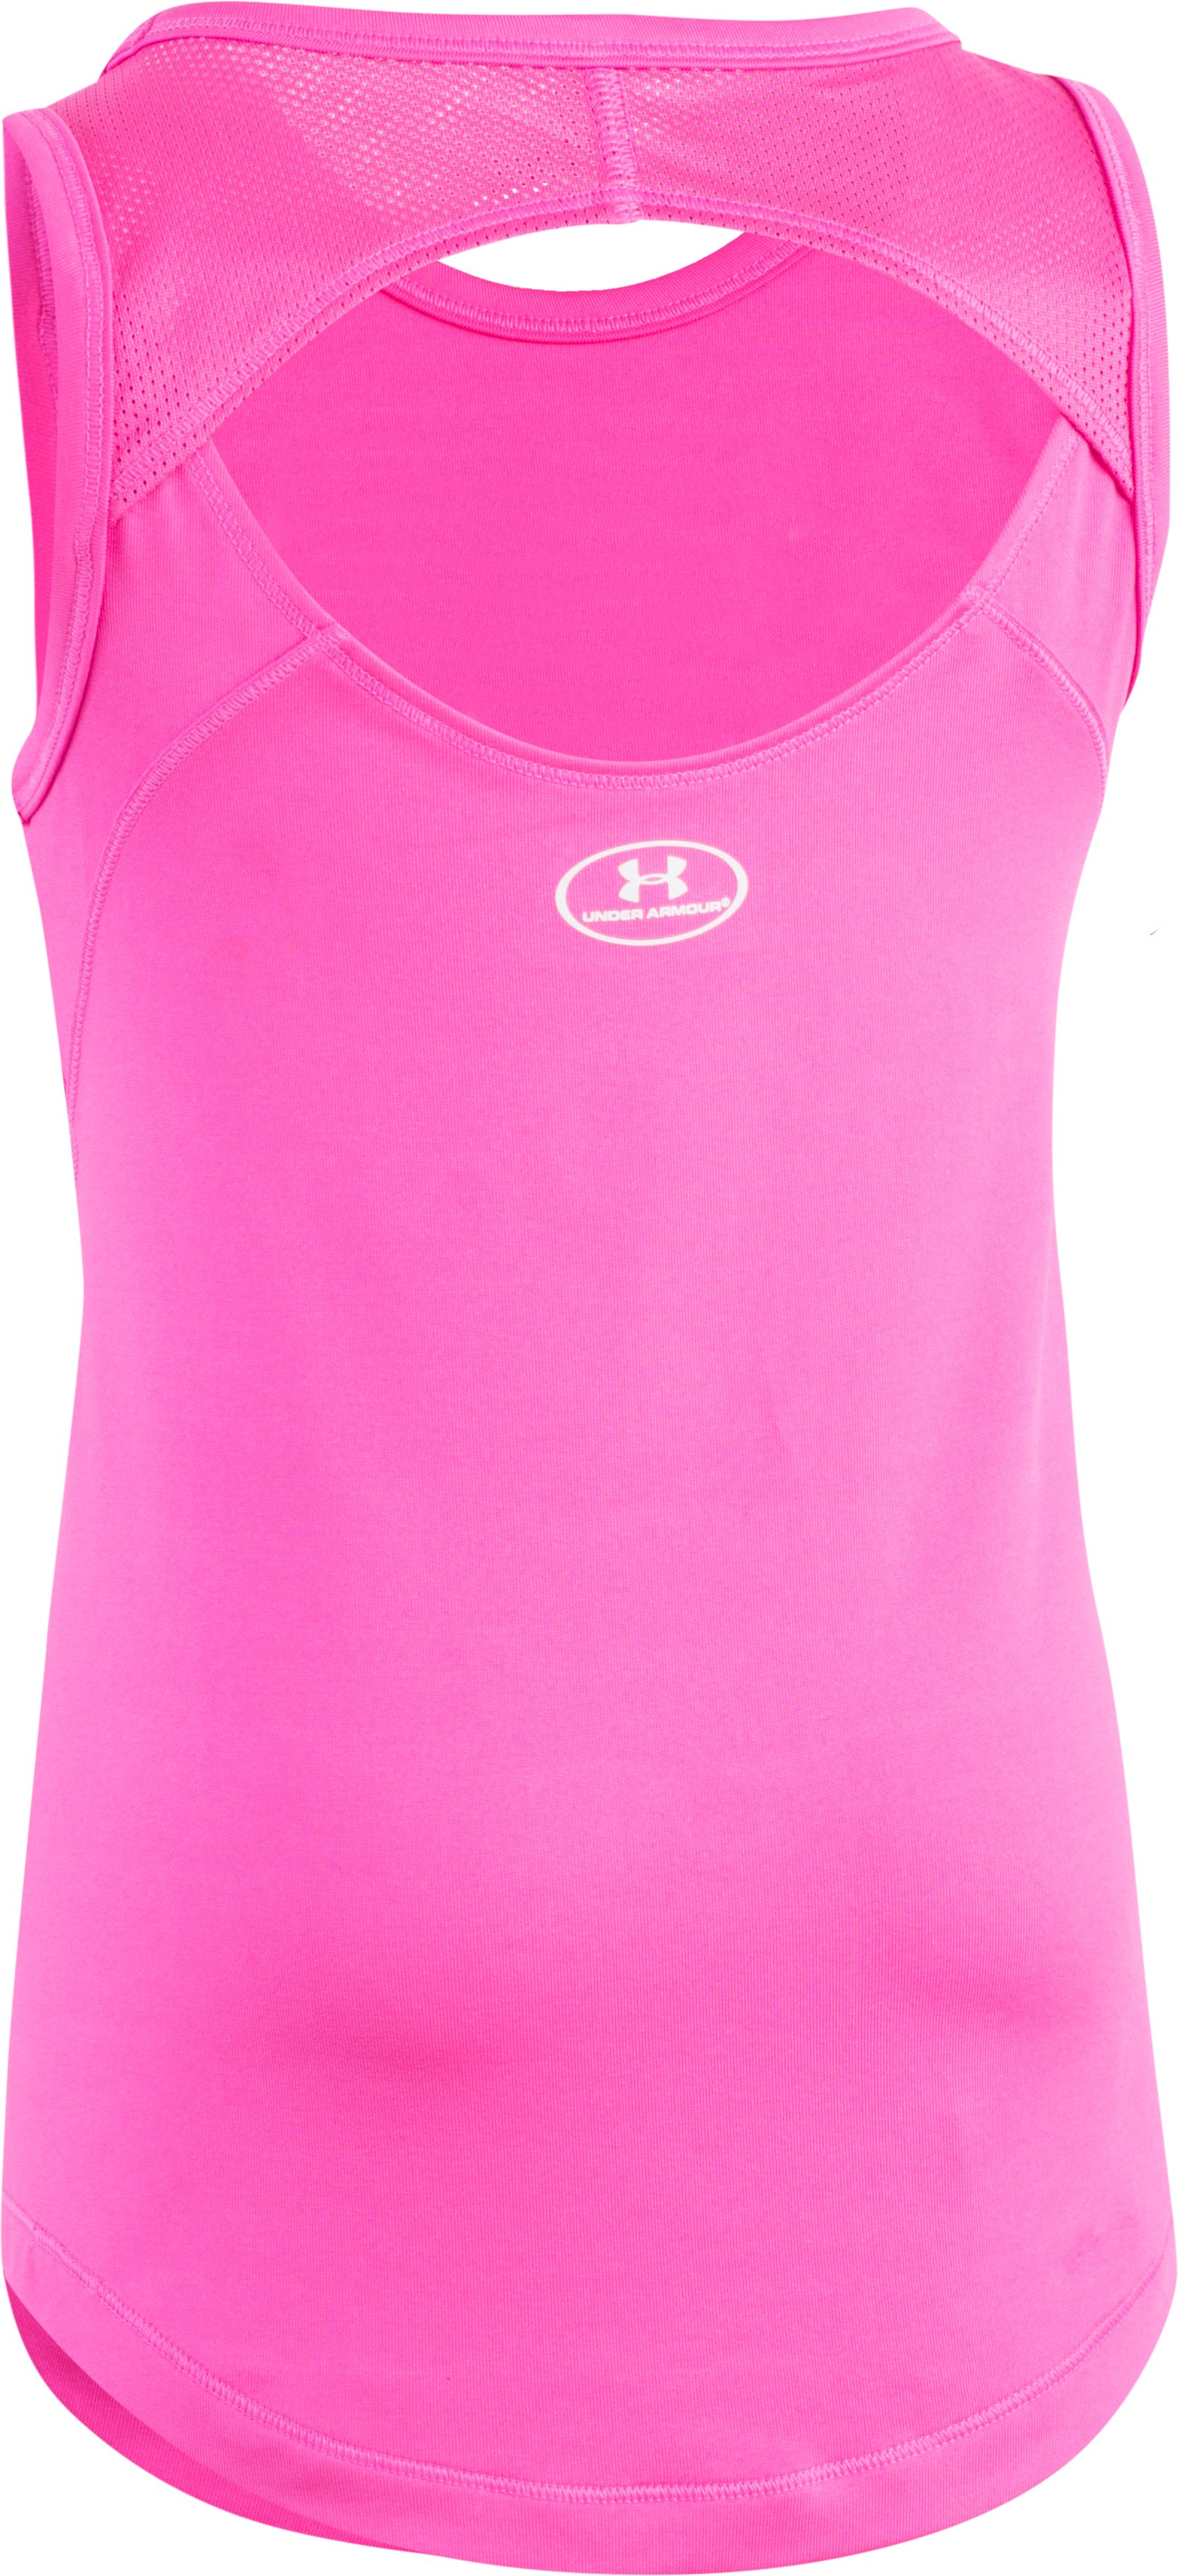 Girls' Pre-School UA Stacked Logo Tank, REBEL PINK, undefined